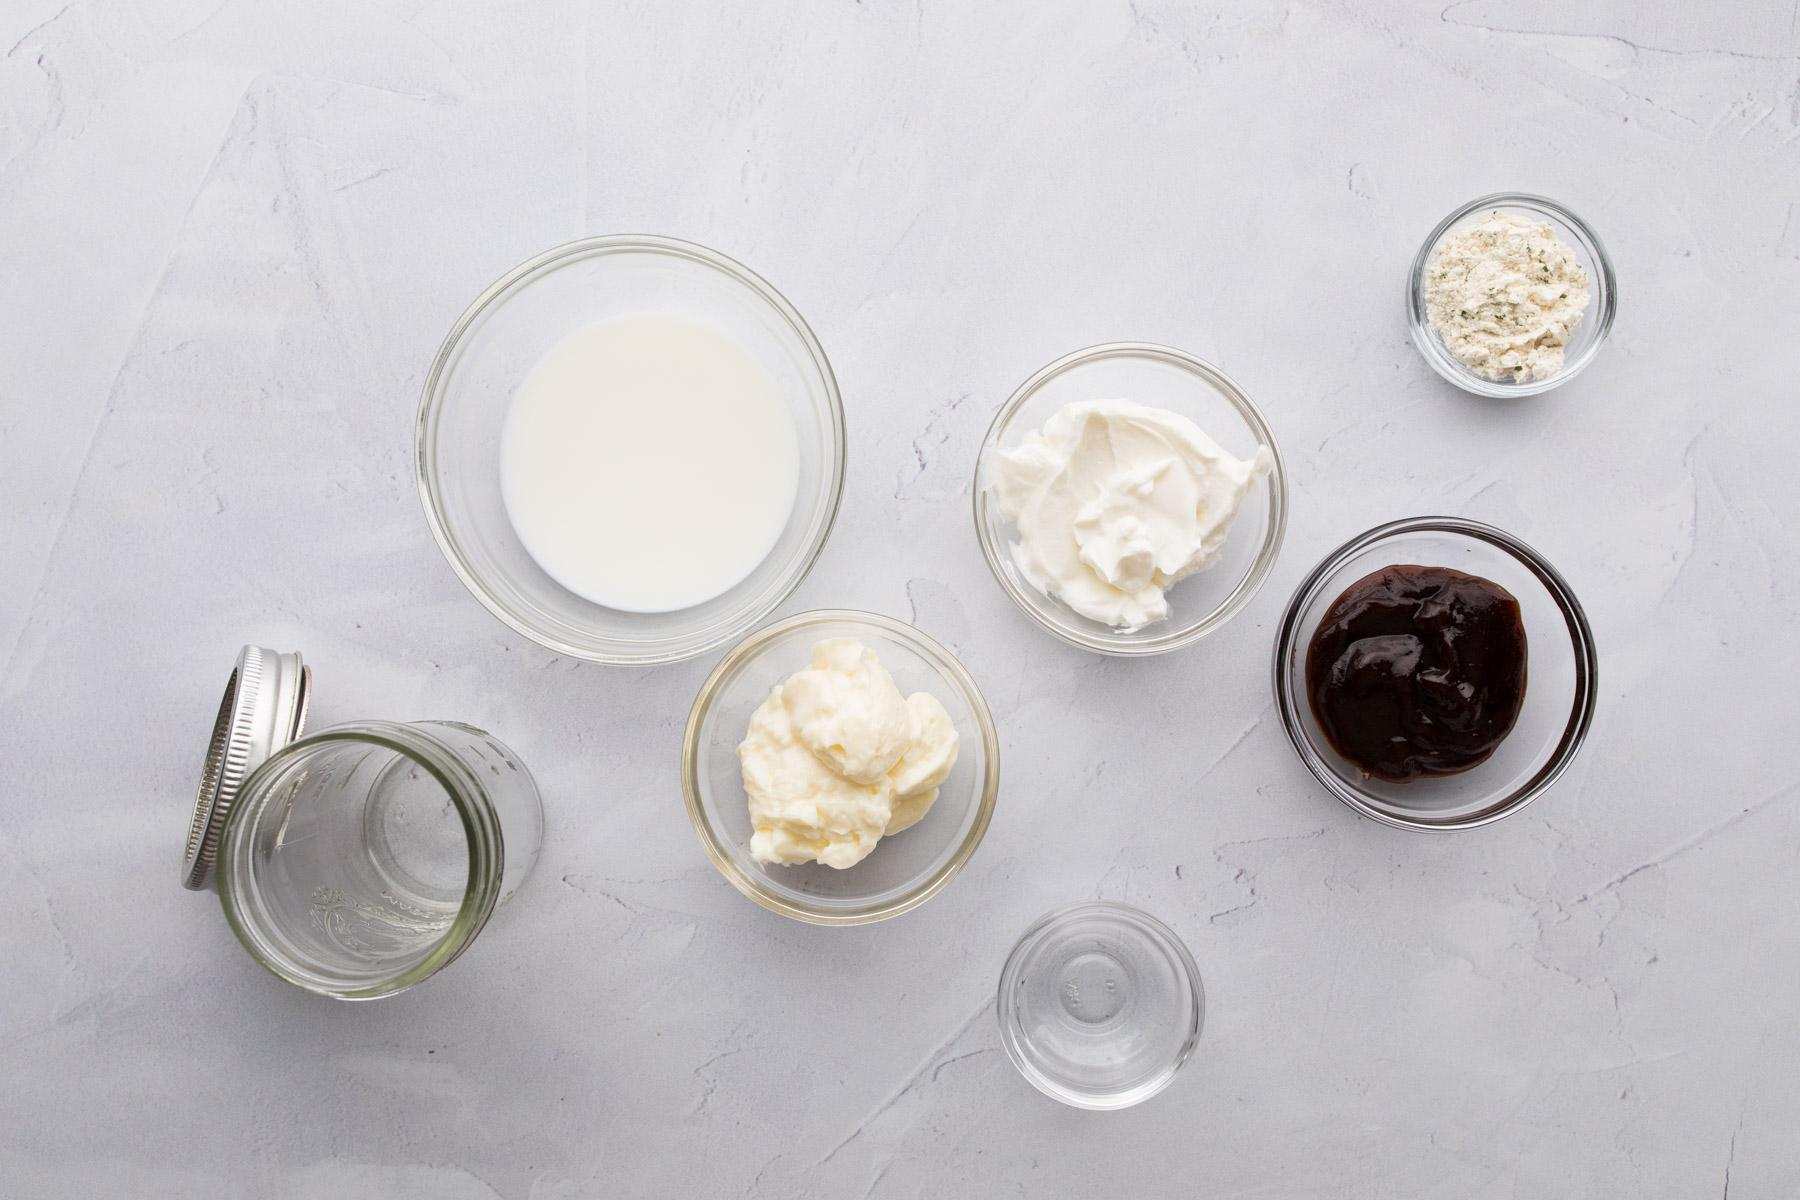 barbecue ranch salad dressing ingredients on a table